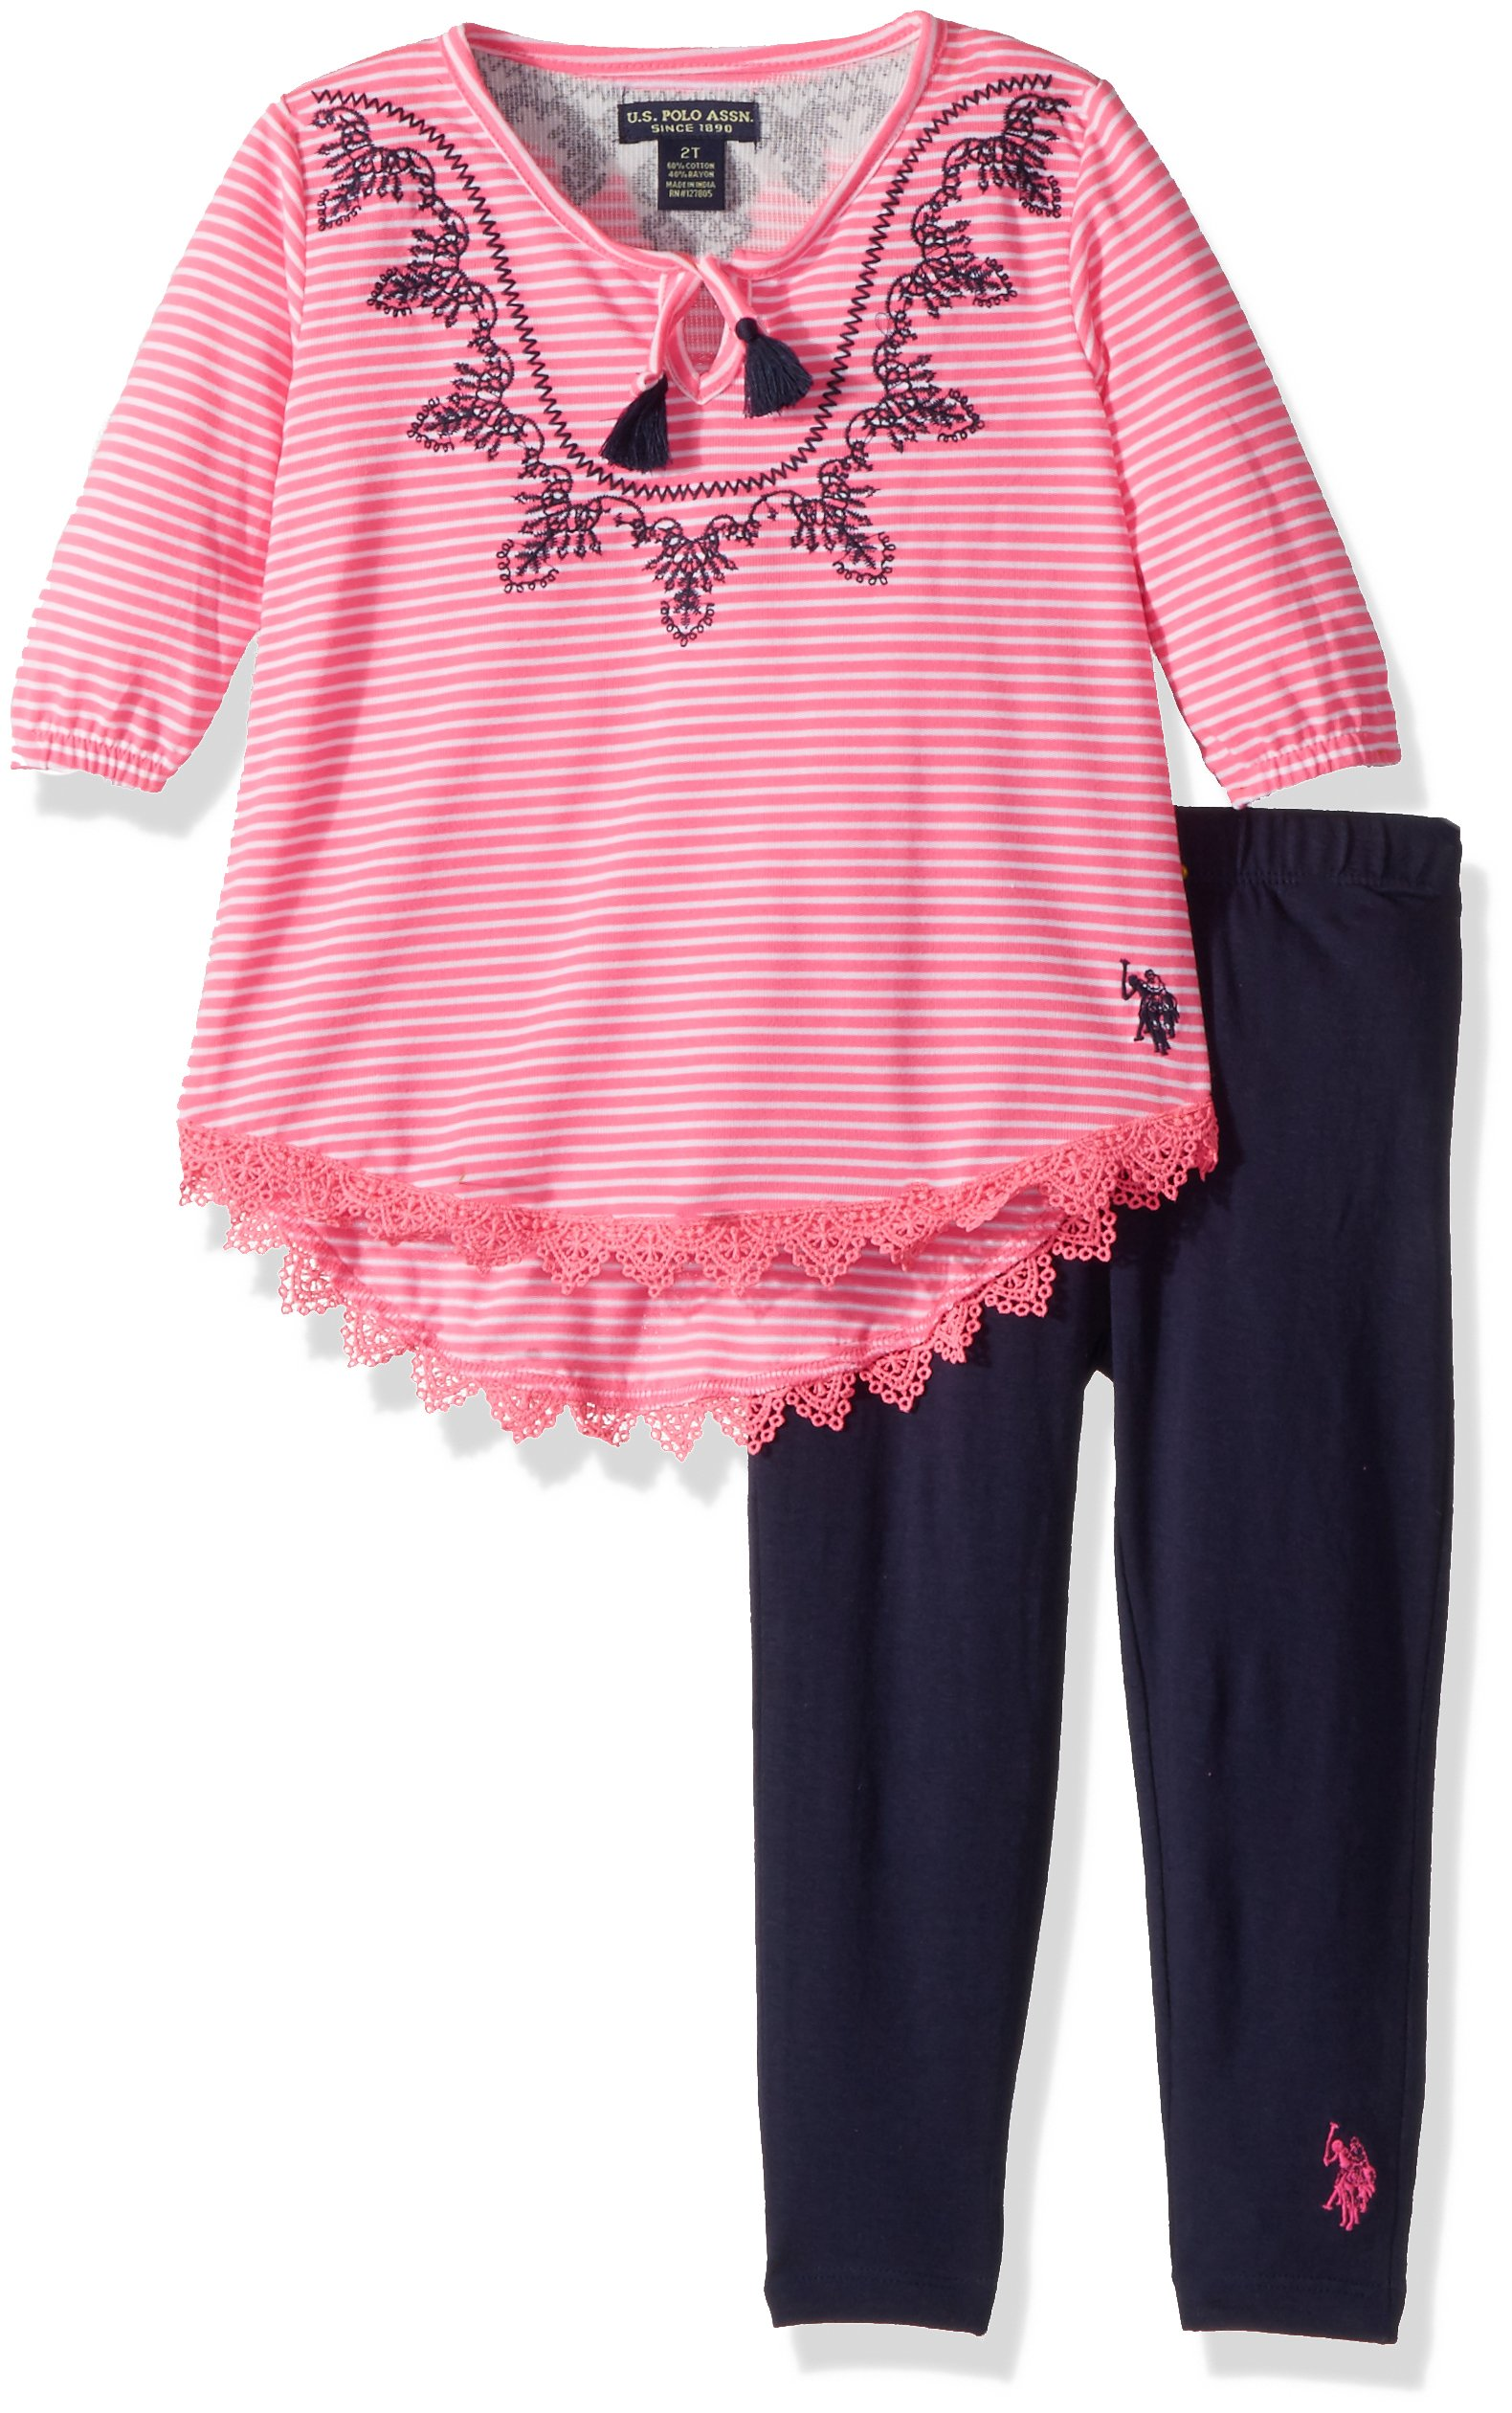 U.S. Polo Assn. Big Girls' Fashion Top and Legging Set, Embro Neck Peasant Top Lycra Jersey Legging Multi, 10